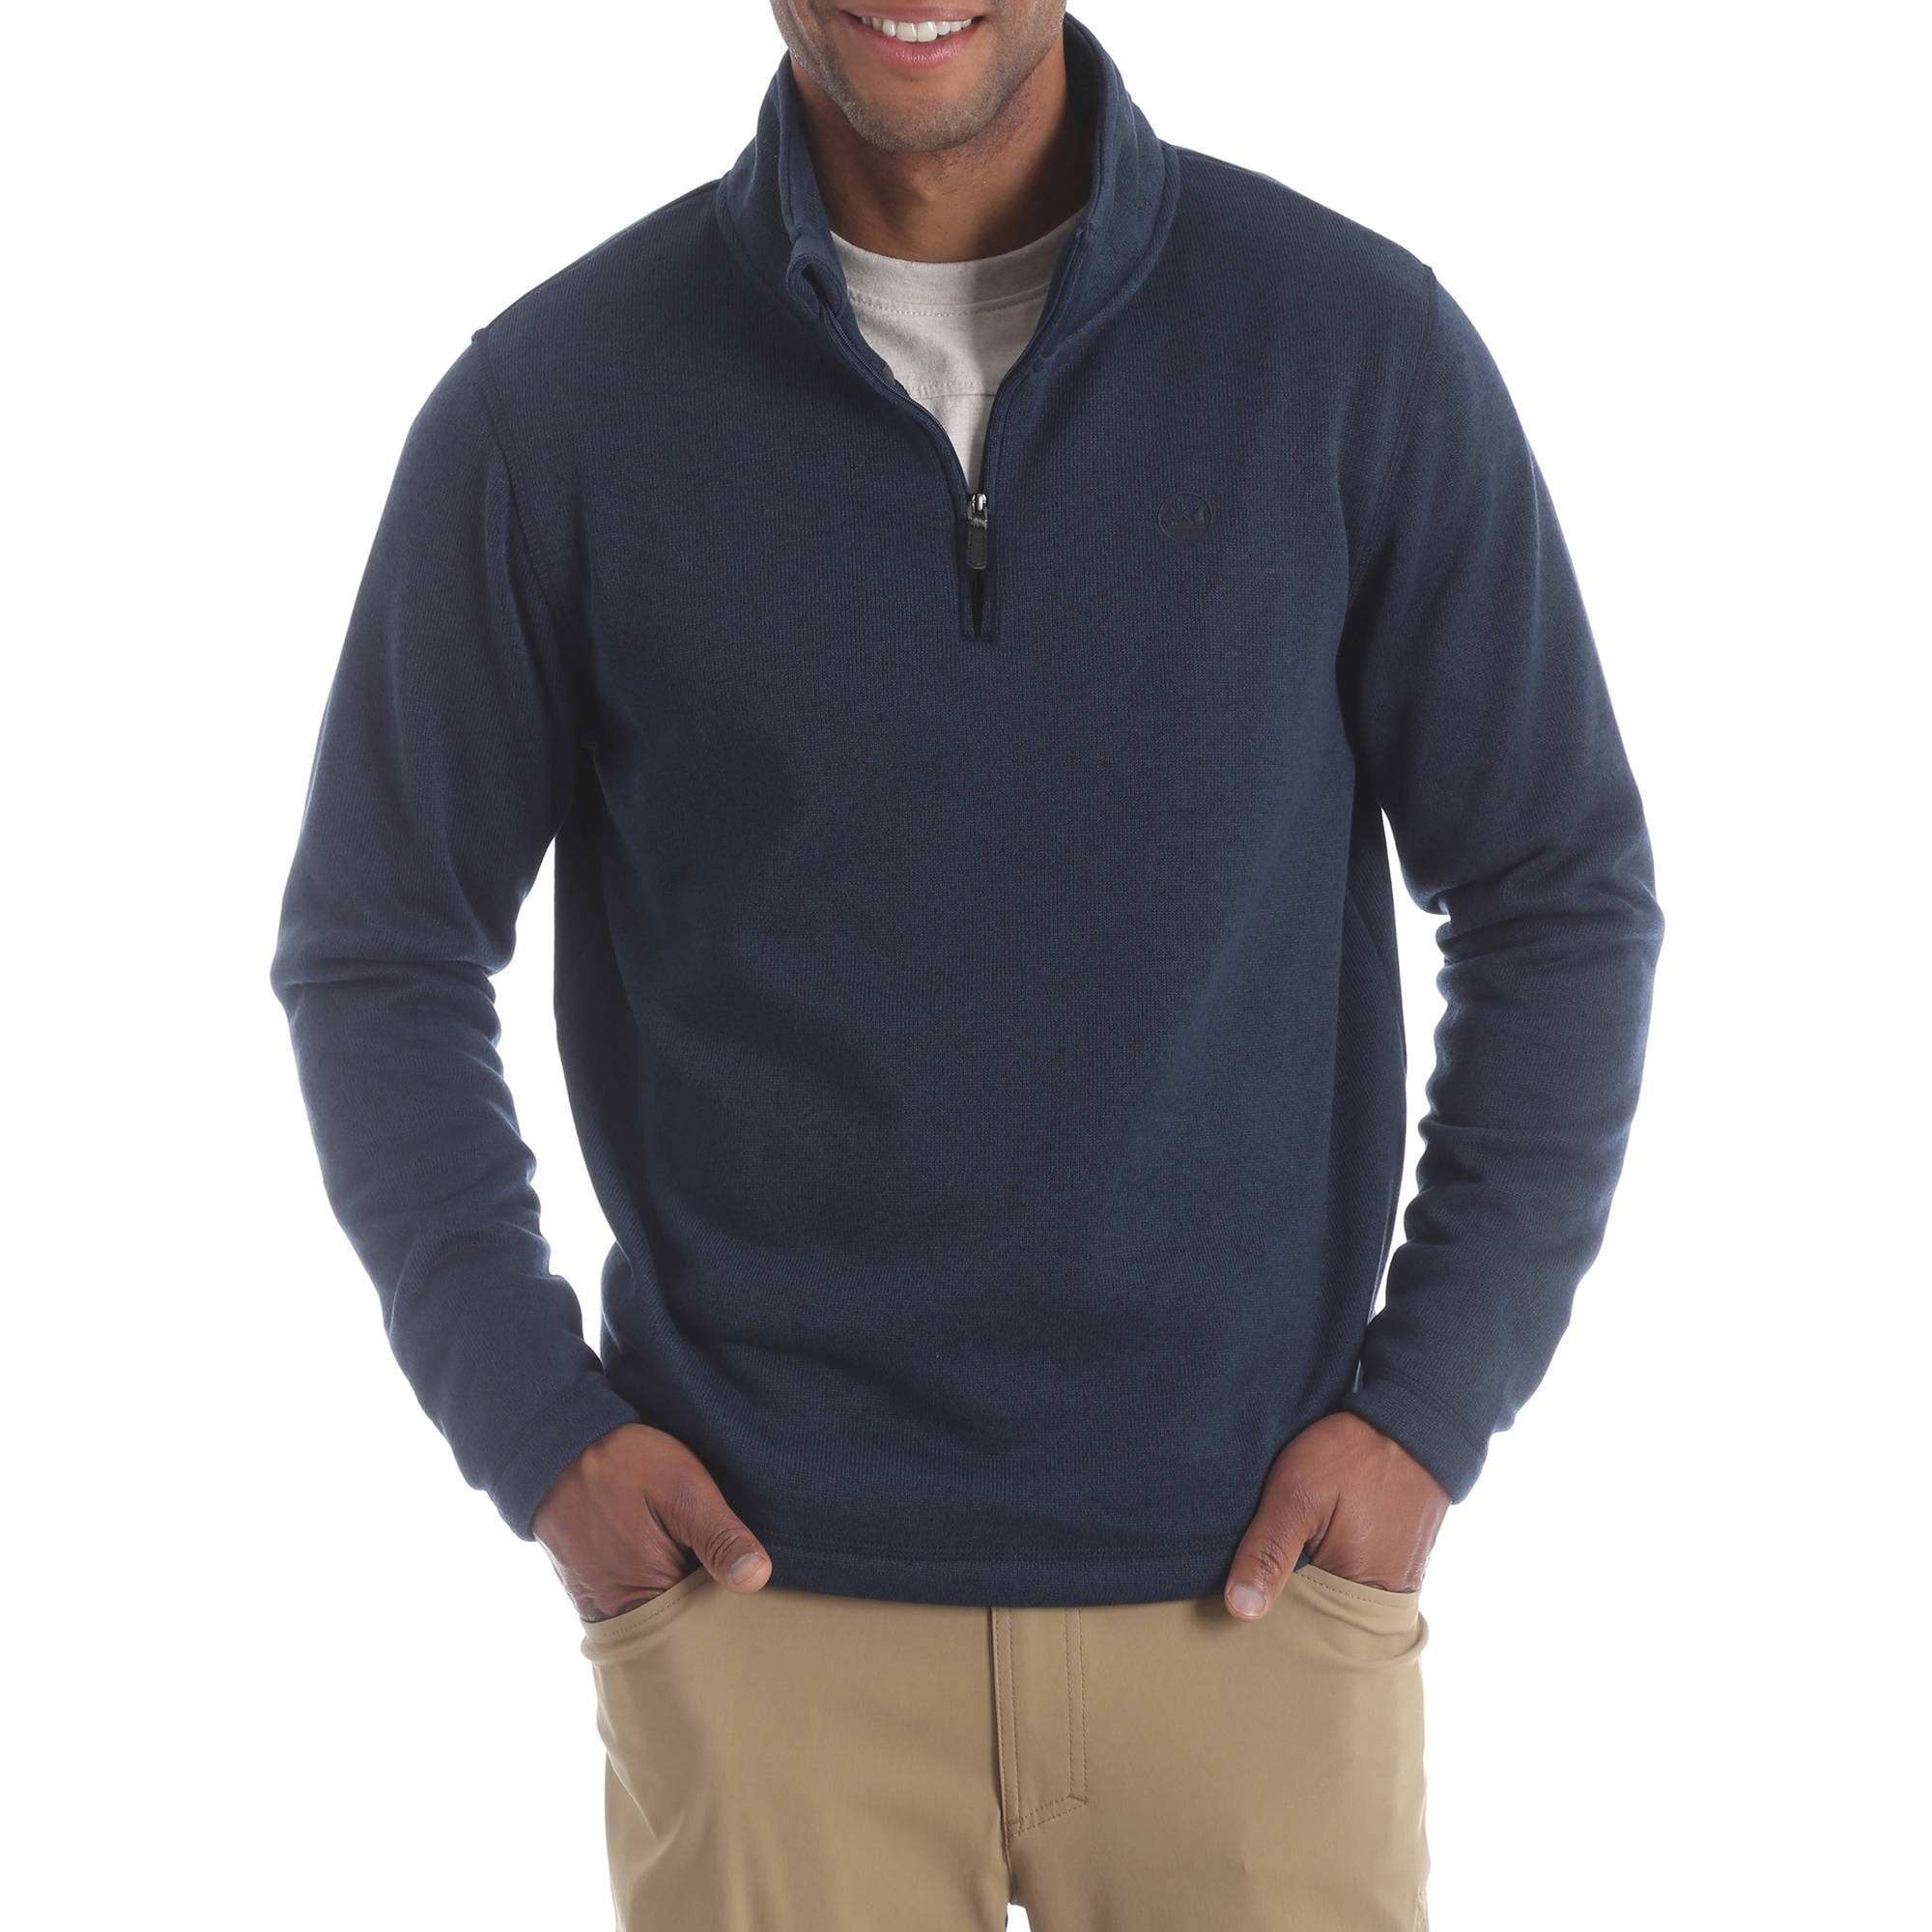 Wrangler Men's Wicking Quarter Zip Fleece Sweater